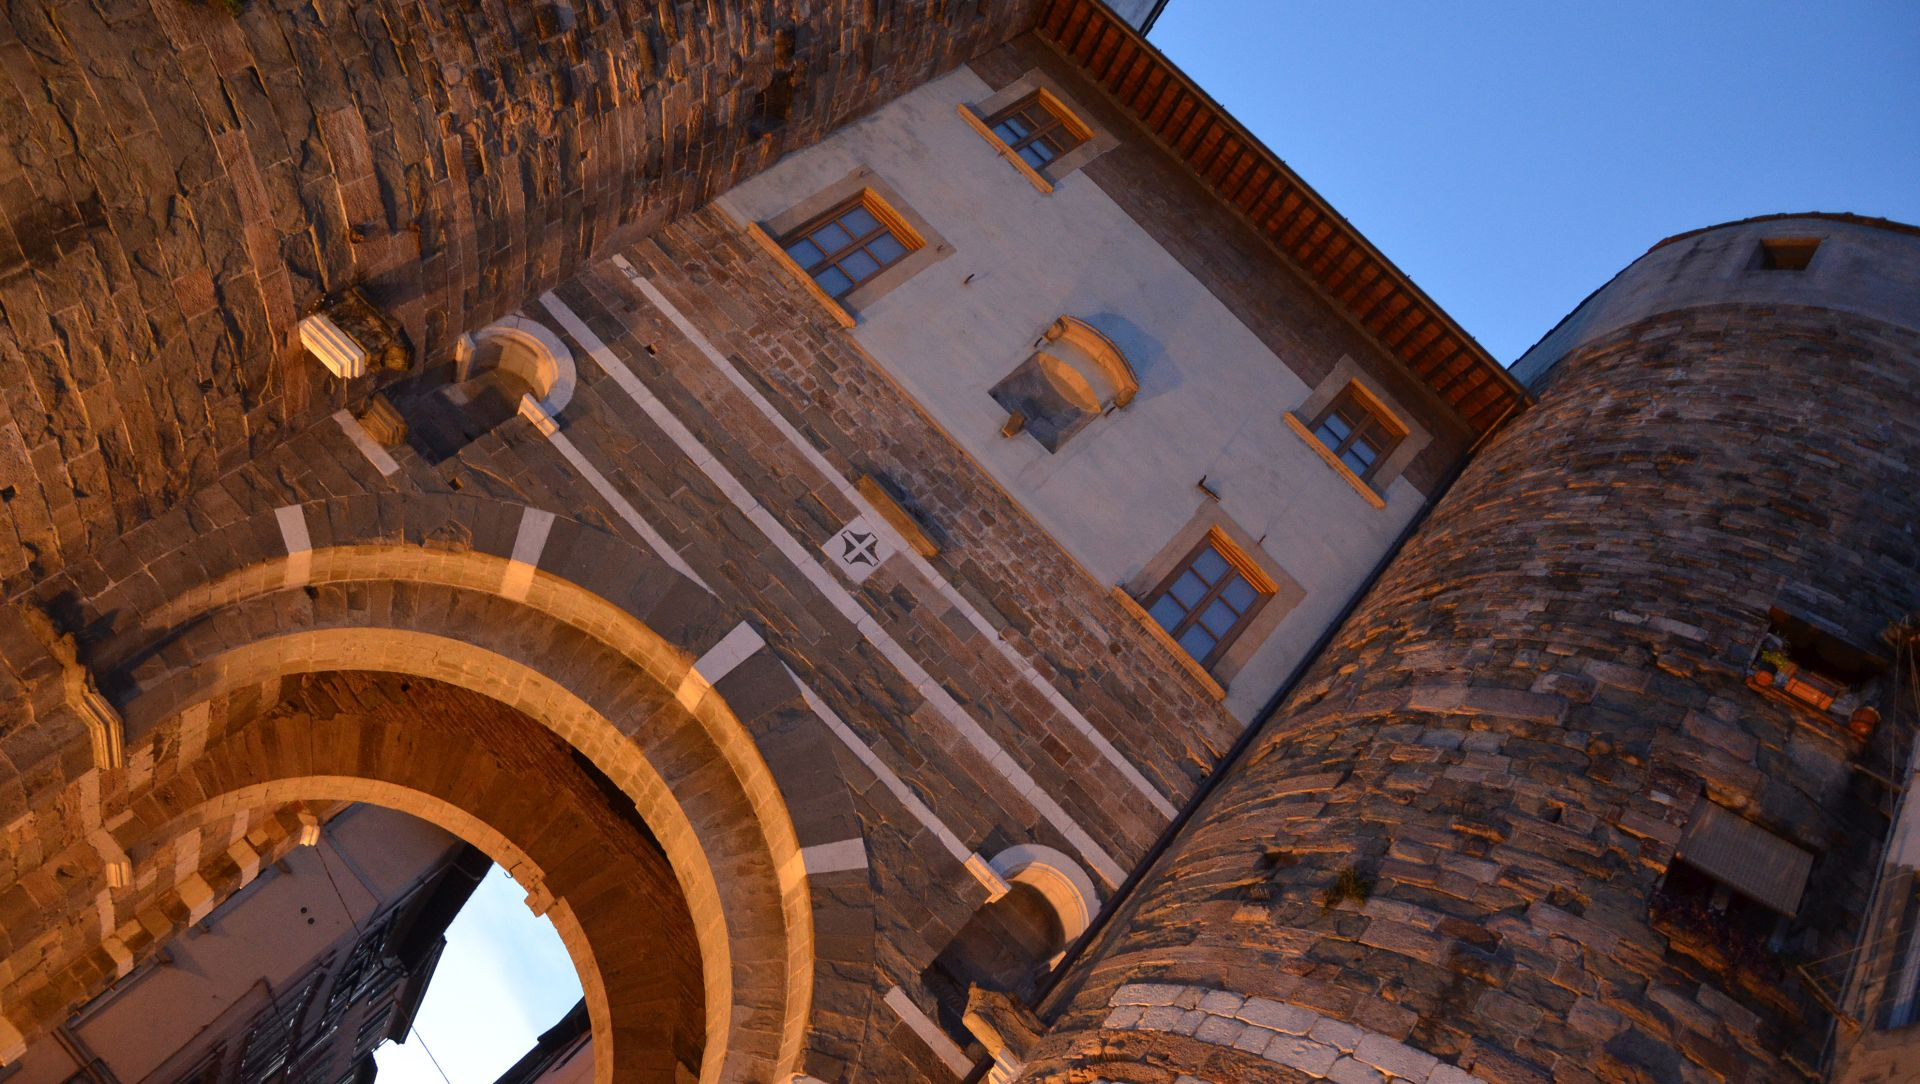 the san gervasio gate of the medieval walls of Lucca